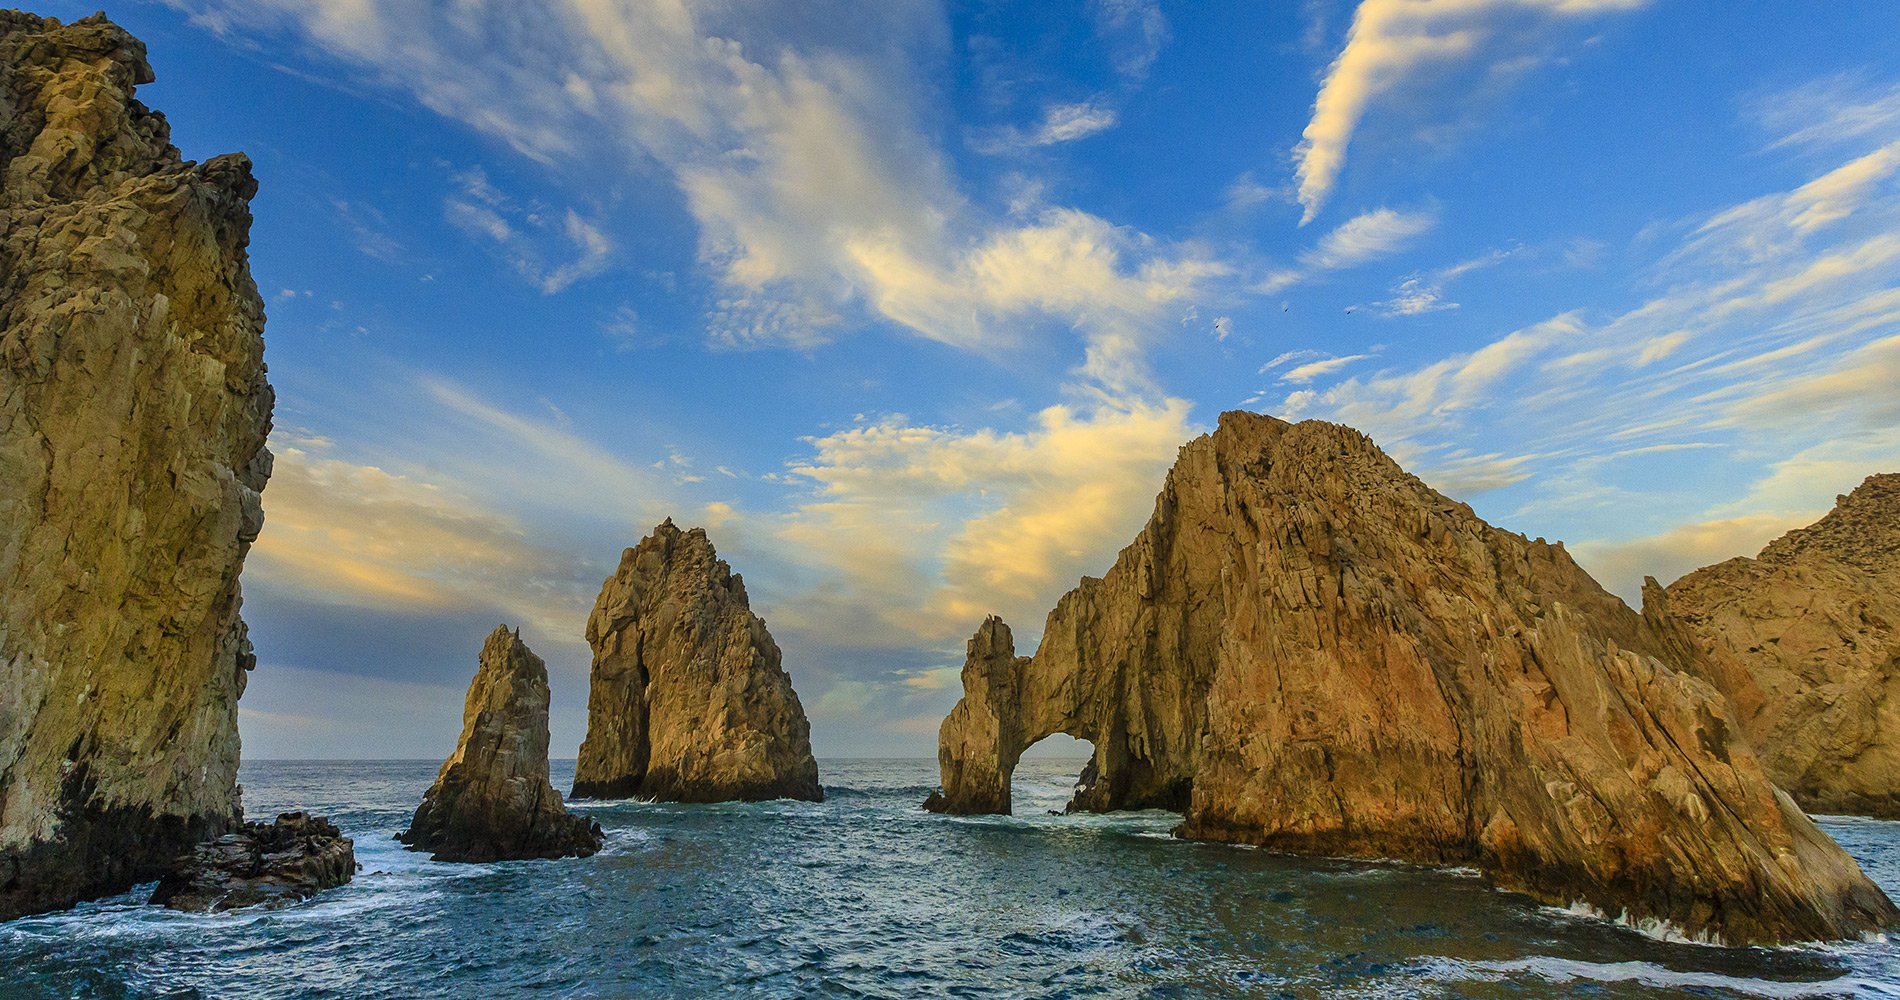 Small Ship Voyages Book Luxury Cruises with Lindblad National Geographic Cruises - California Coast